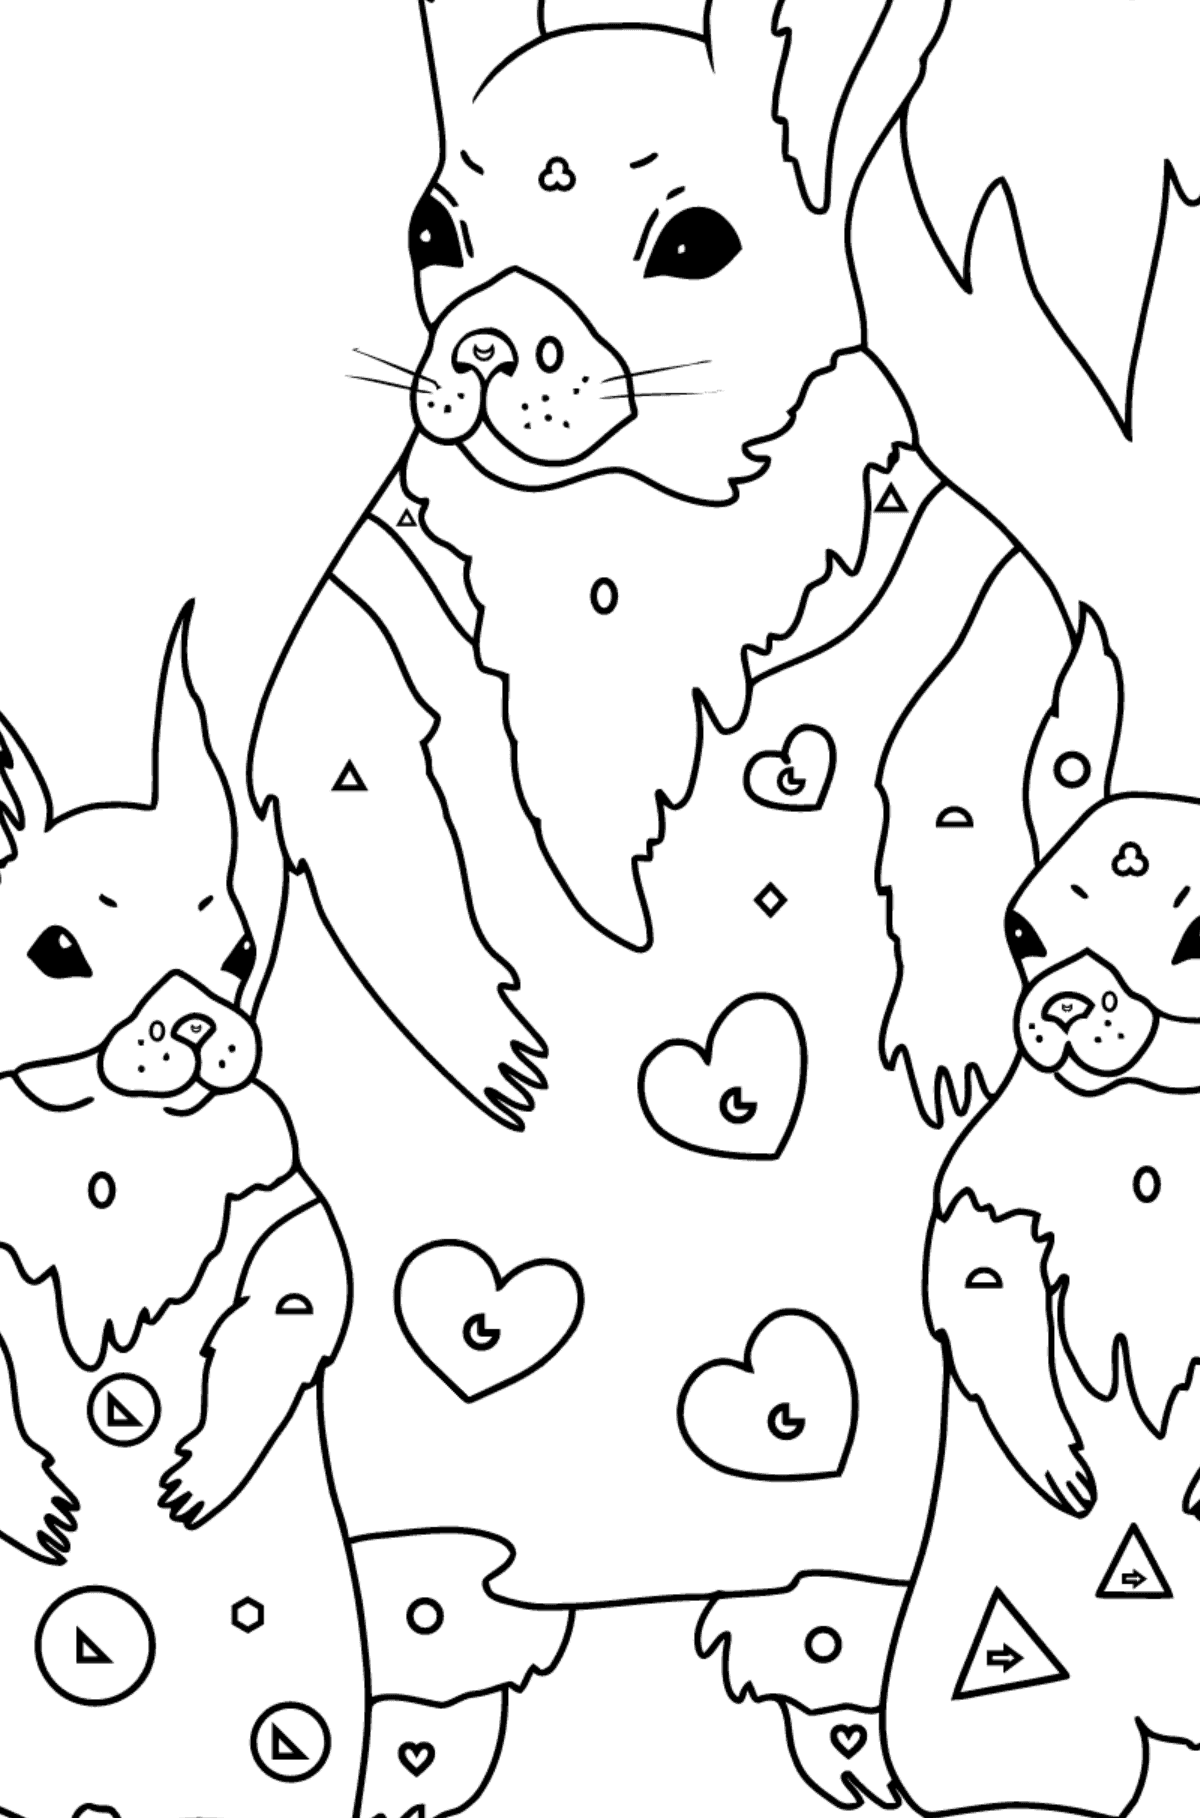 Spring Coloring Page - Squirrels have Dressed Up - Coloring by Geometric Shapes for Kids